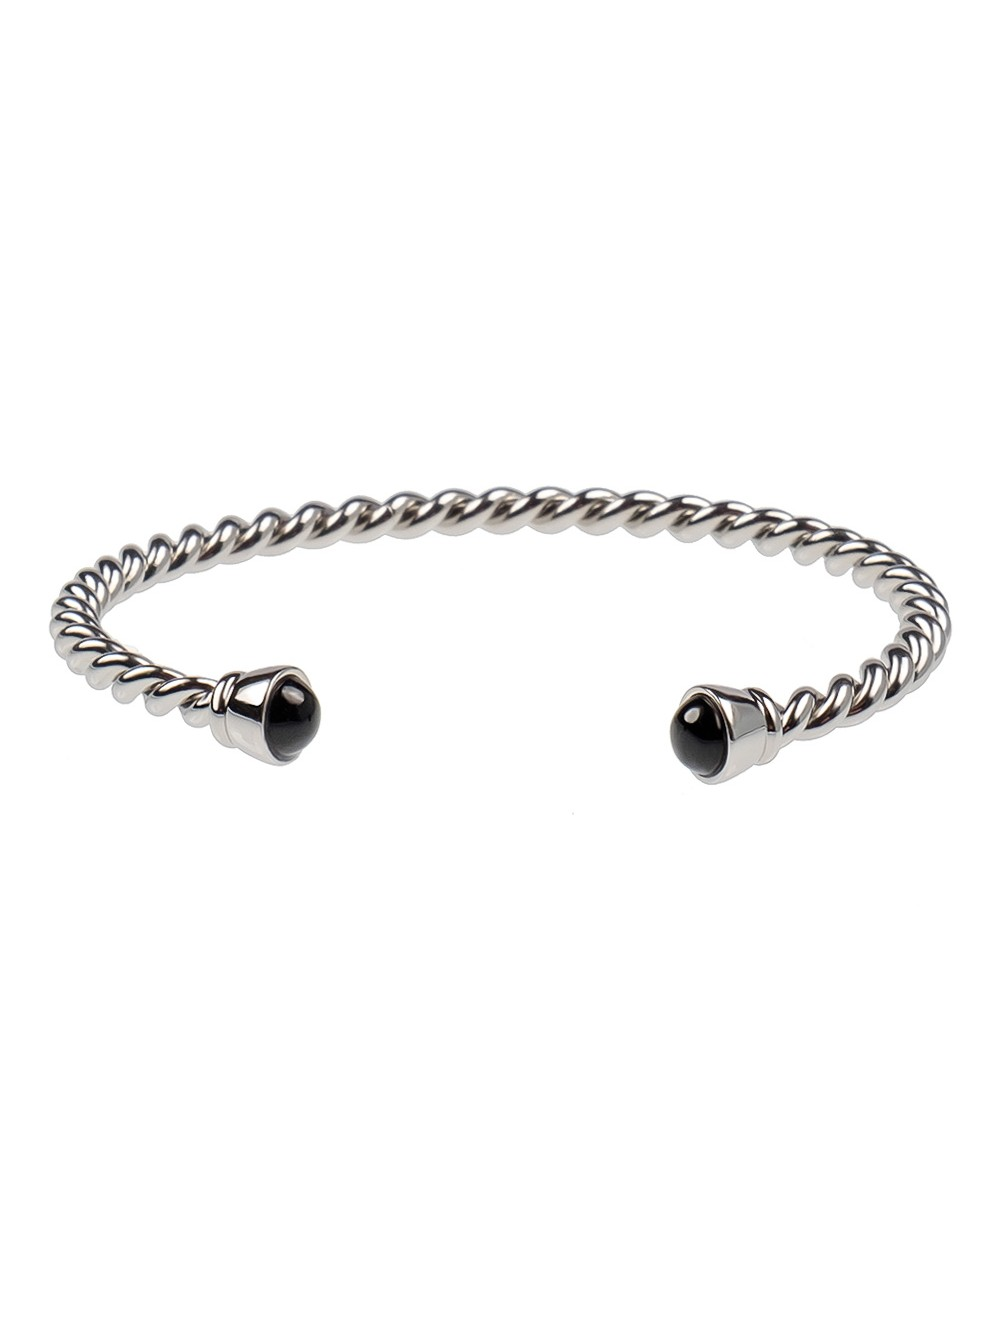 BANGLE BLACK SWING